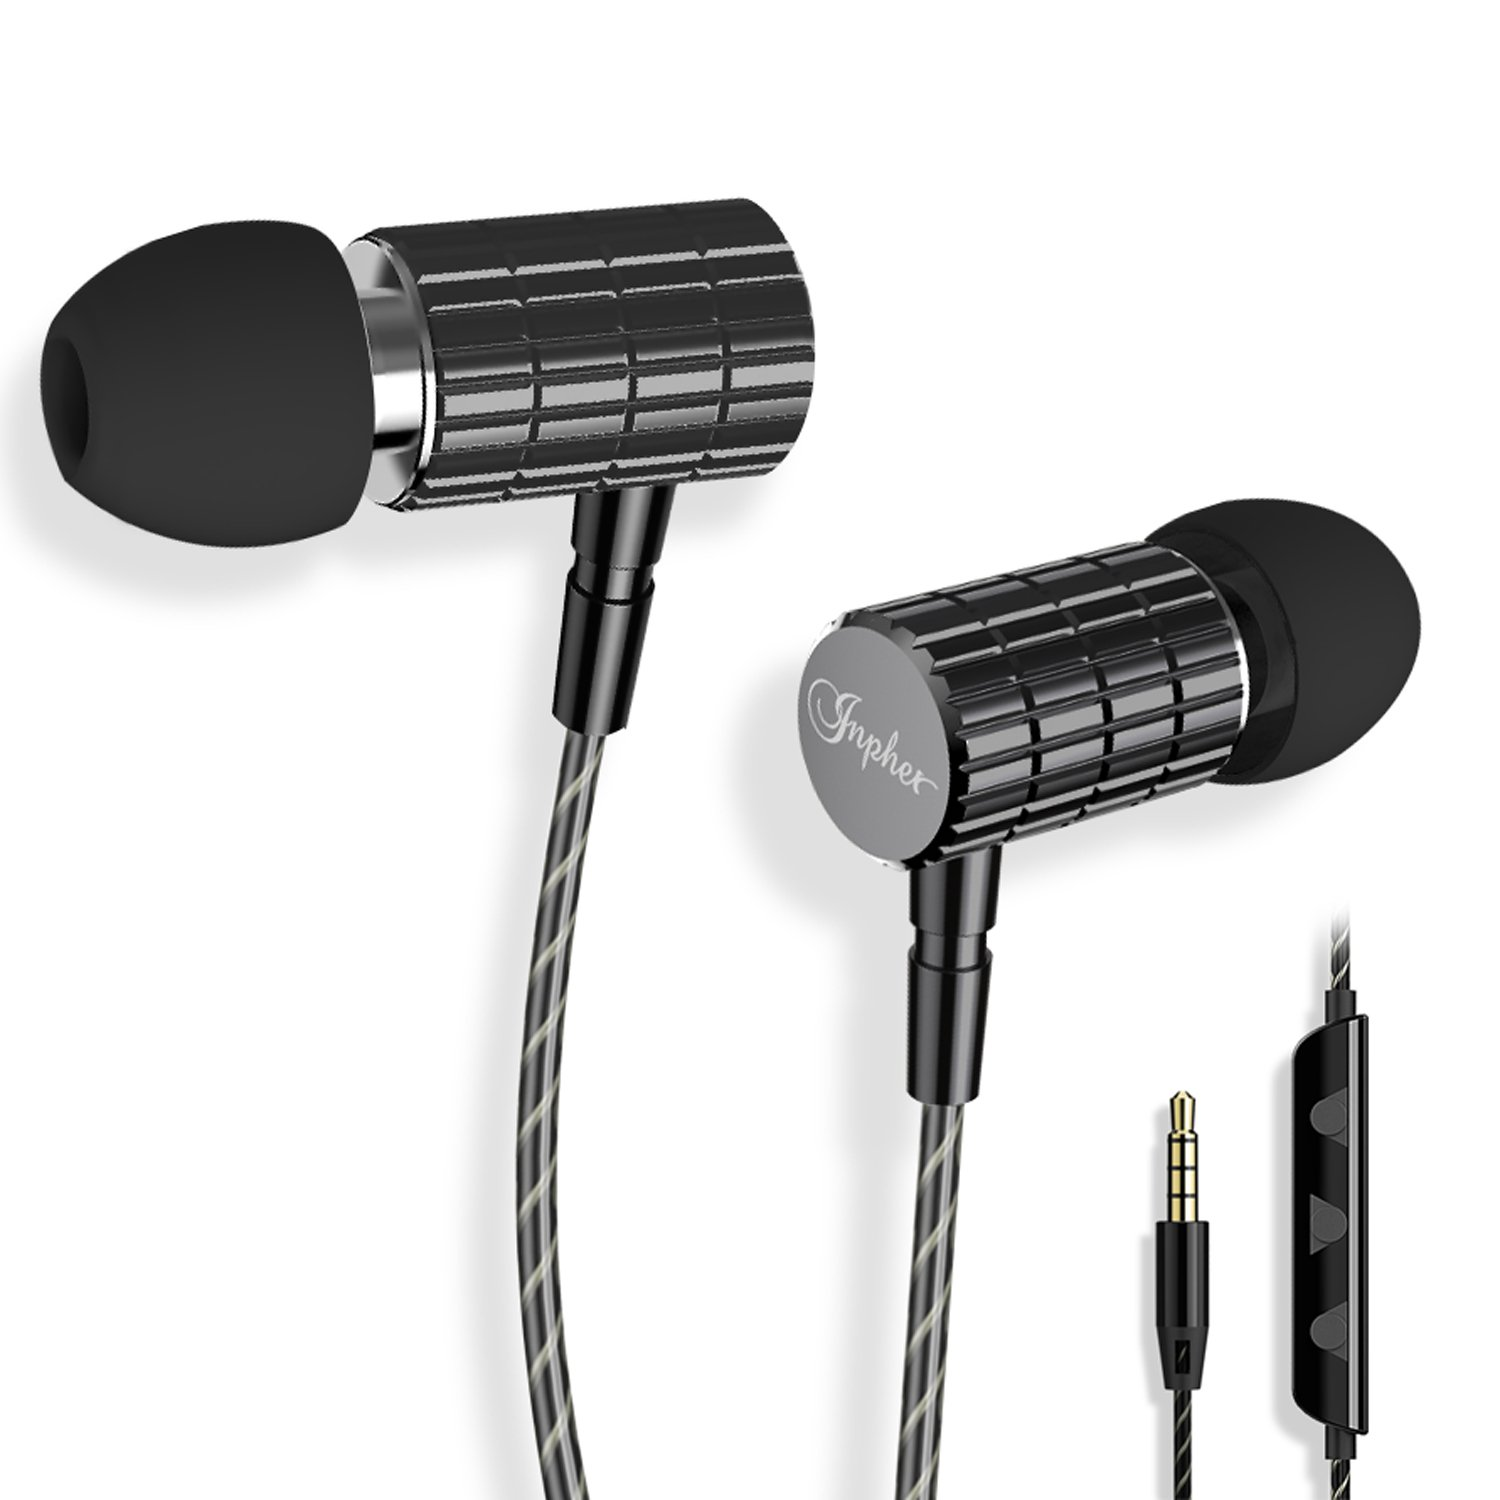 Earphones, Tintec in-Ear Earbuds Stereo Headphones High Definition, Tangle  Free, Noise Isolation, Heavy Deep Bass for iPhone, iPad, iPod, Samsung